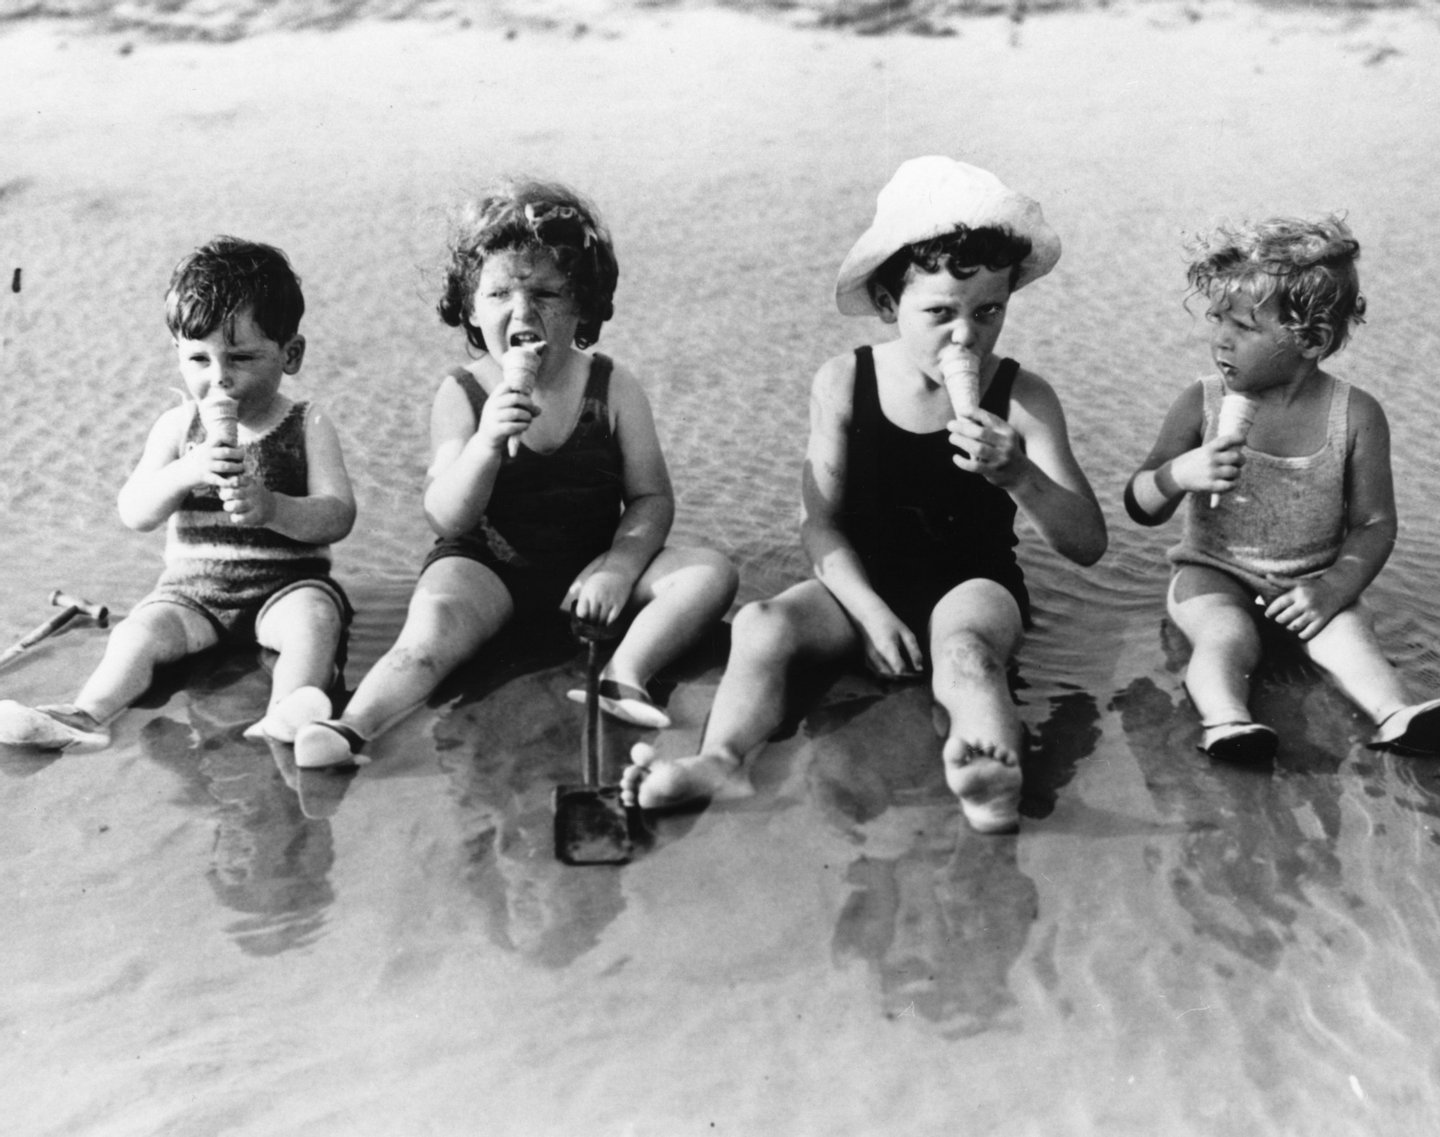 20th July 1935: A group of young children sit in the shallows as they enjoy an ice-cream at Littlehampton. (Photo by Reg Speller/Fox Photos/Getty Images)